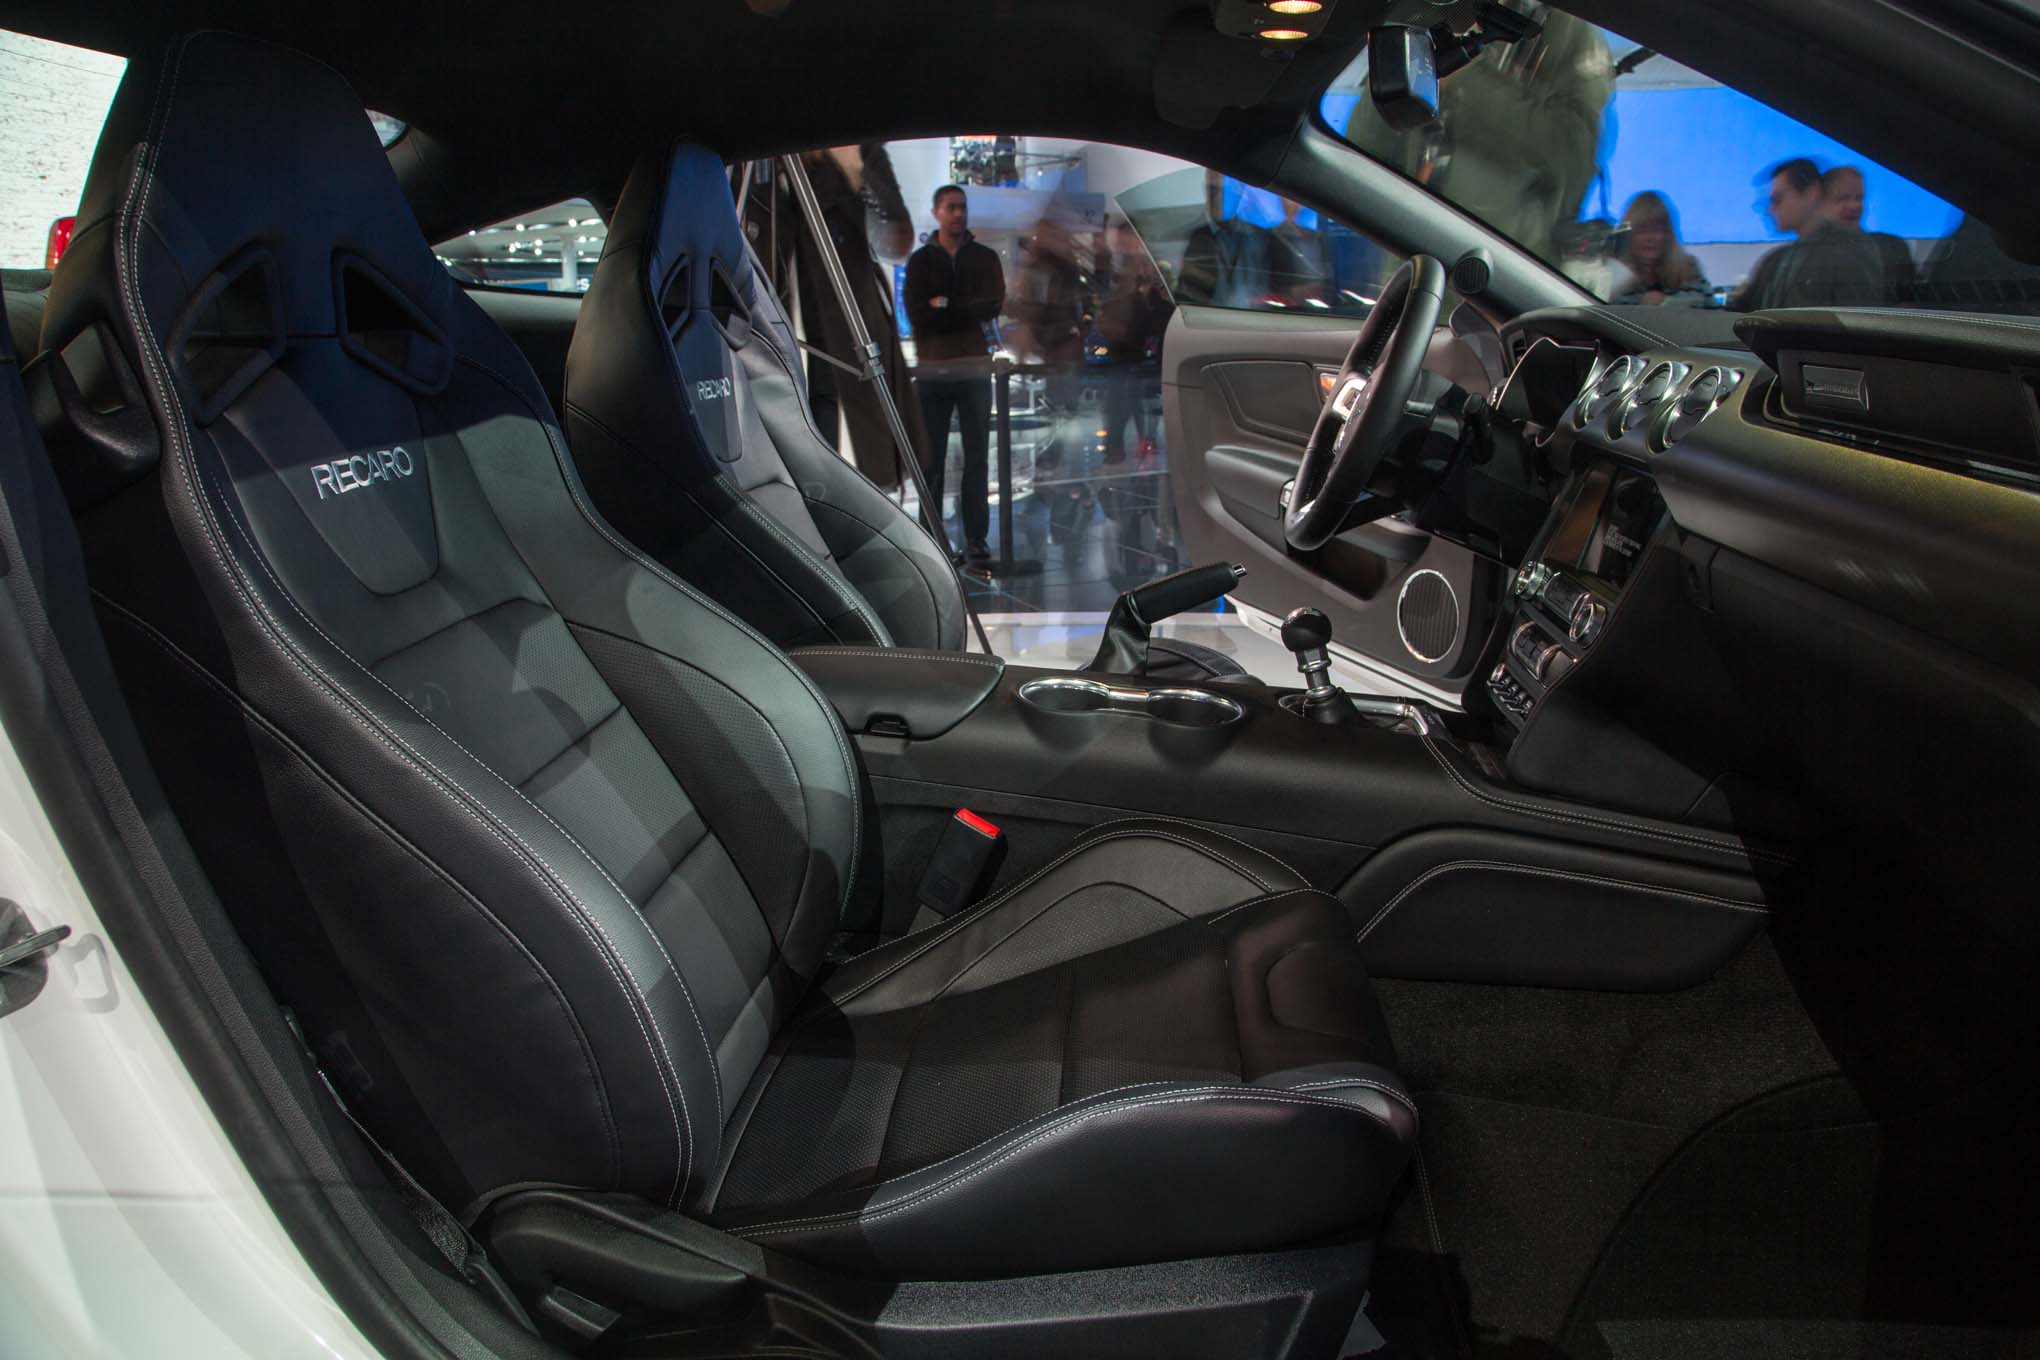 2018-Ford-Mustang-GT-front-interior-seats